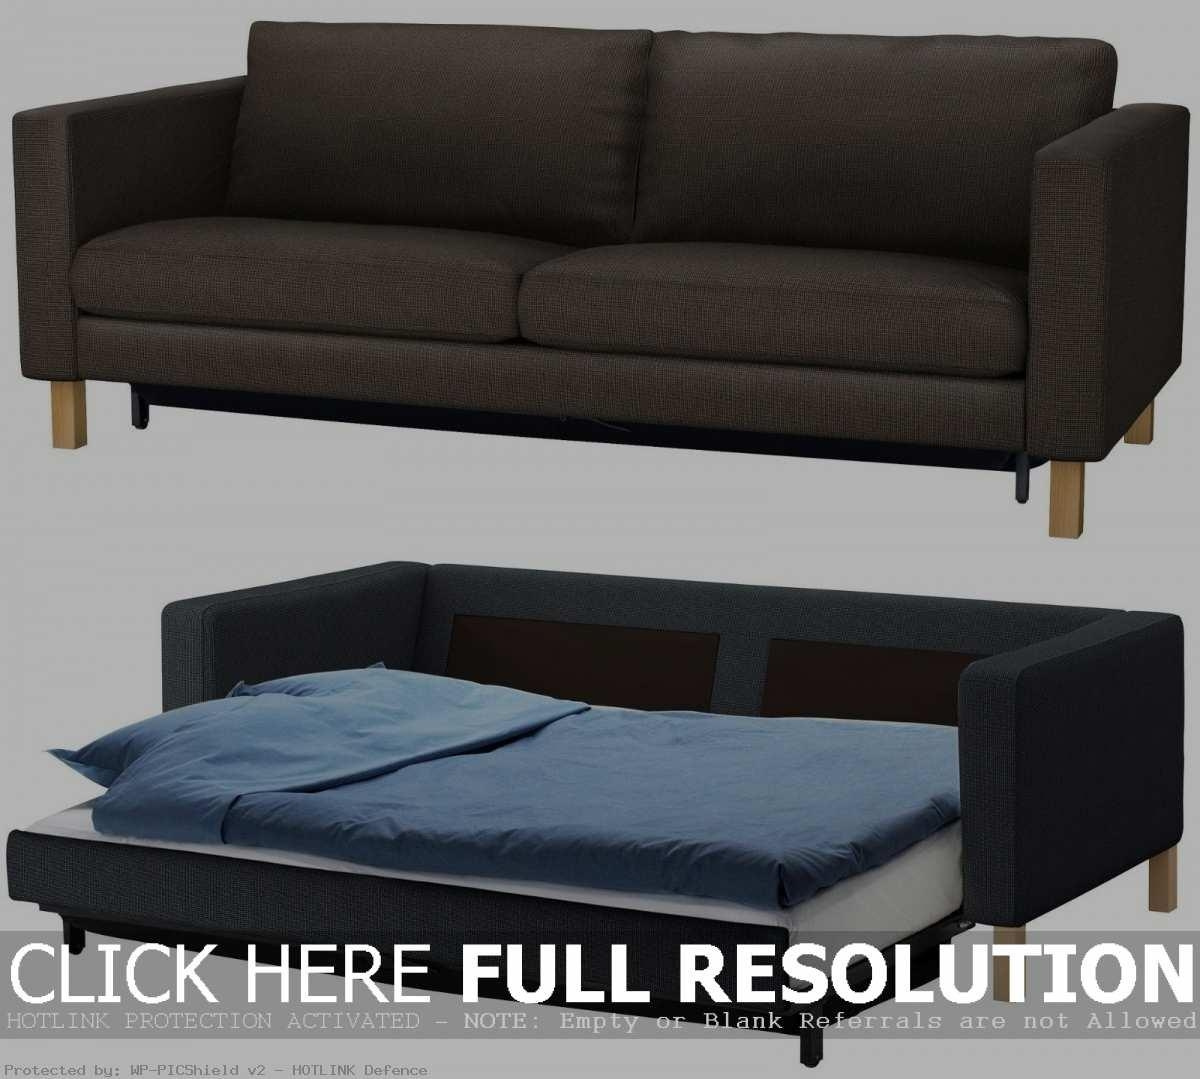 Small Sleeper Sofa Ikea Intended For Sleeper Sofa Sectional Ikea (Image 15 of 20)